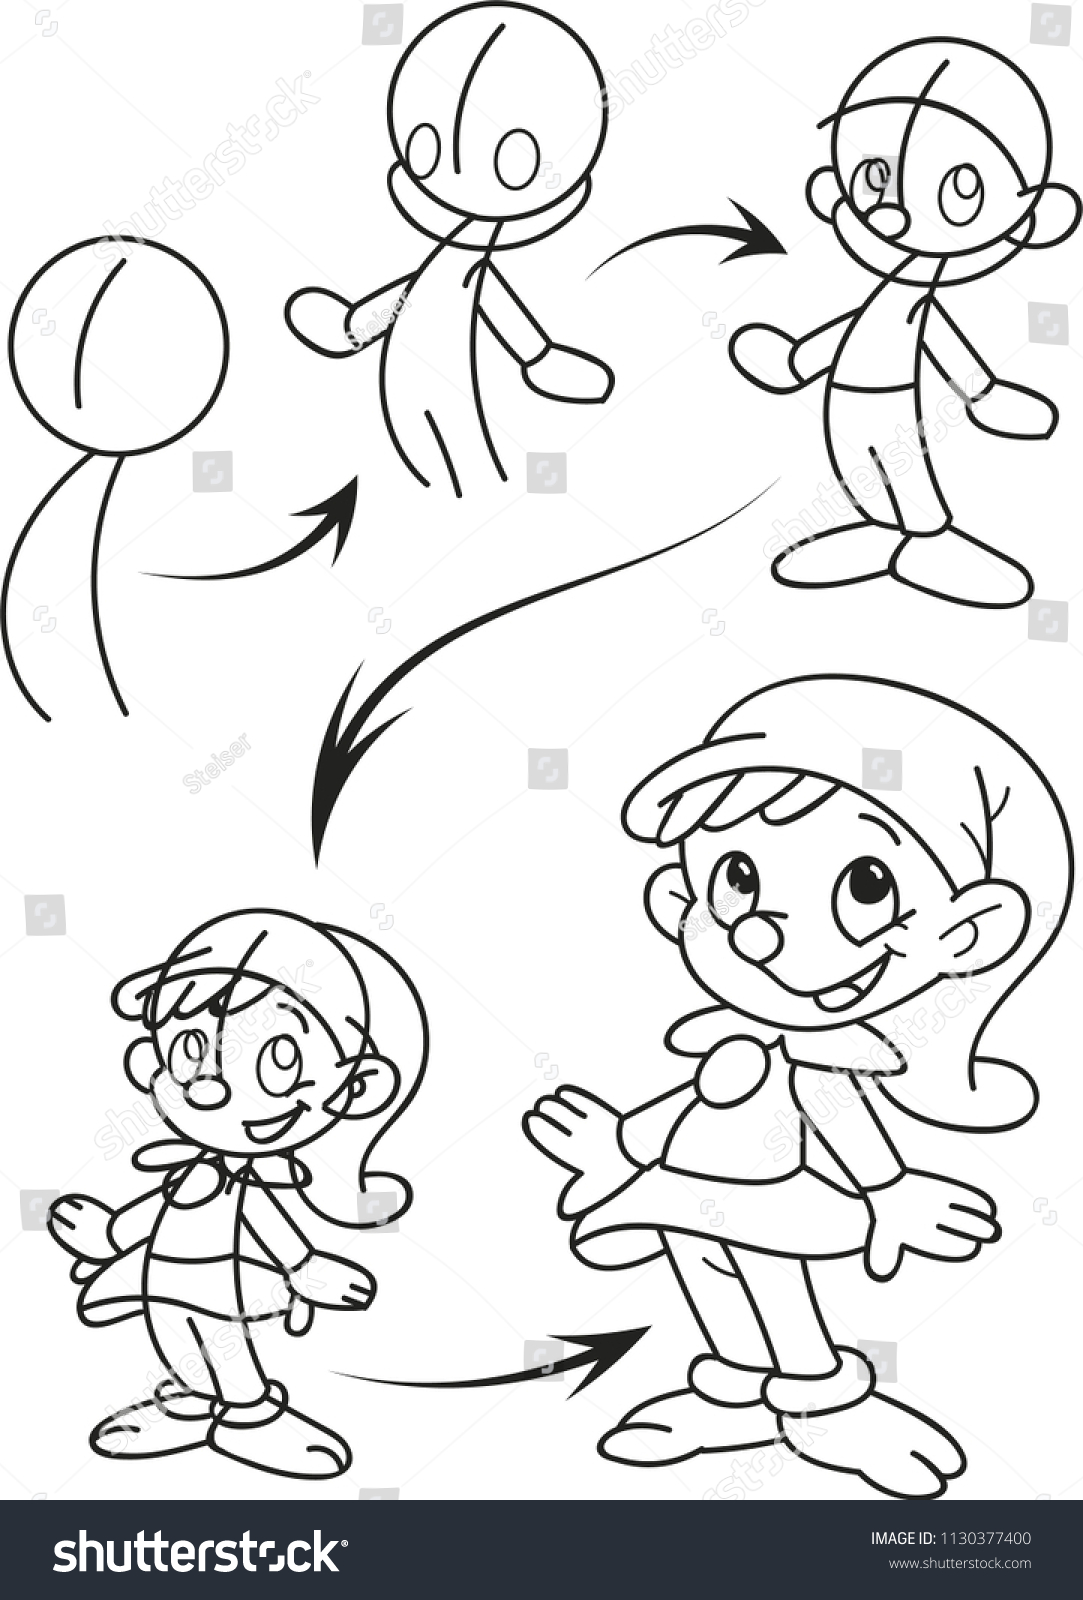 drawing tutorial for children page shows how to learn step by step to draw christmas - How To Draw A Christmas Elf